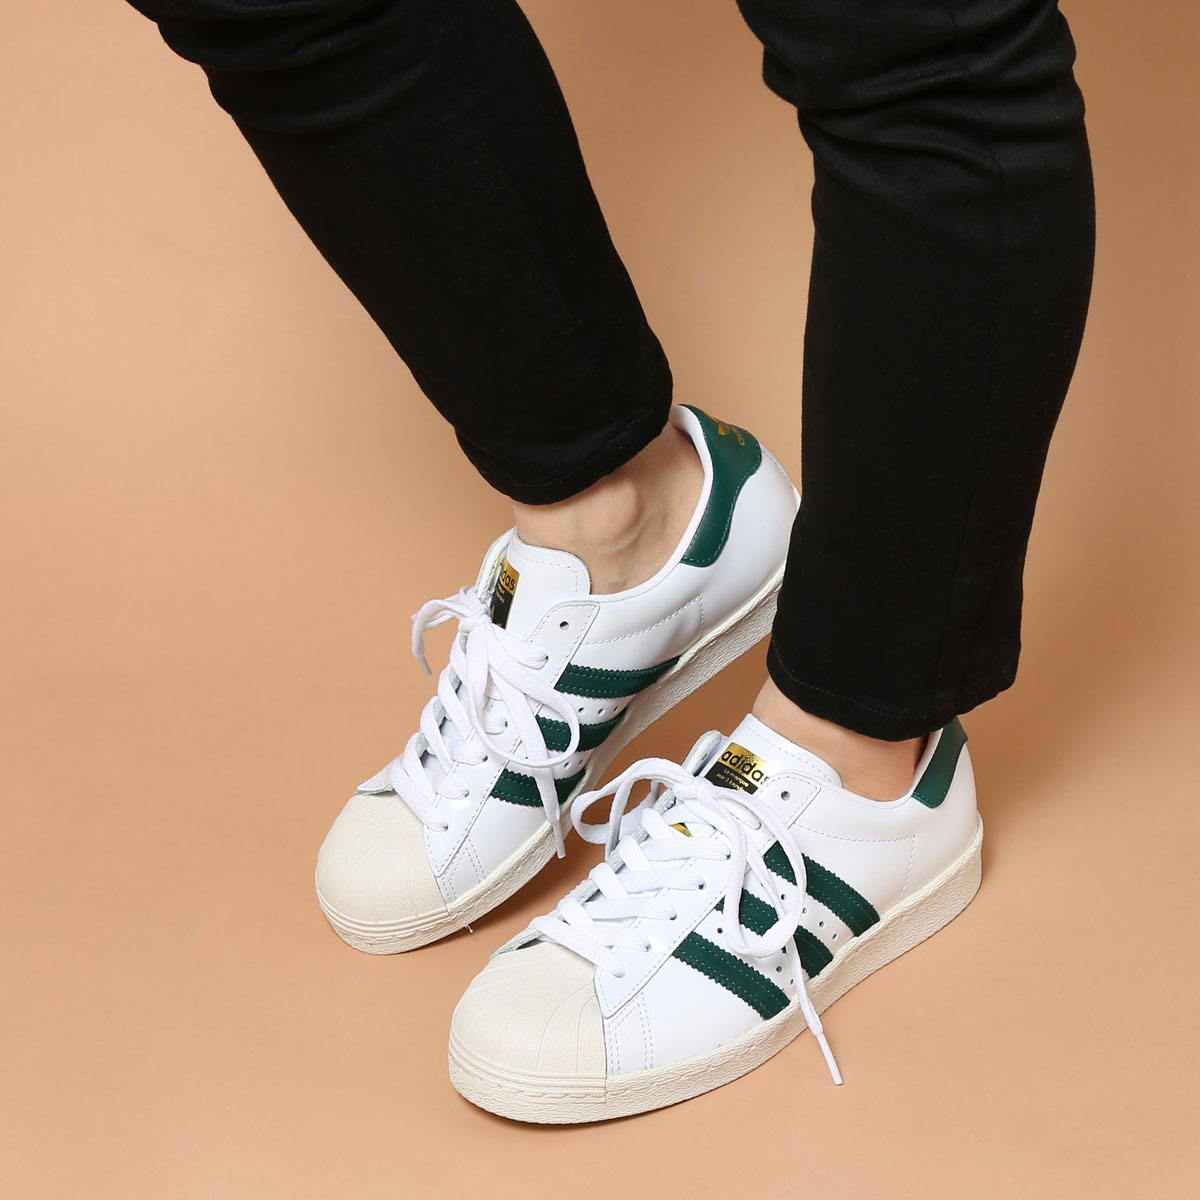 save off 8ab8a 019d5 adidas Originals SUPERSTAR 80s (Running White Collegiate Green Gold Mett)  (アディダス オリジナルス スーパースター80s)  メンズ レディース スニーカー 17SS-I